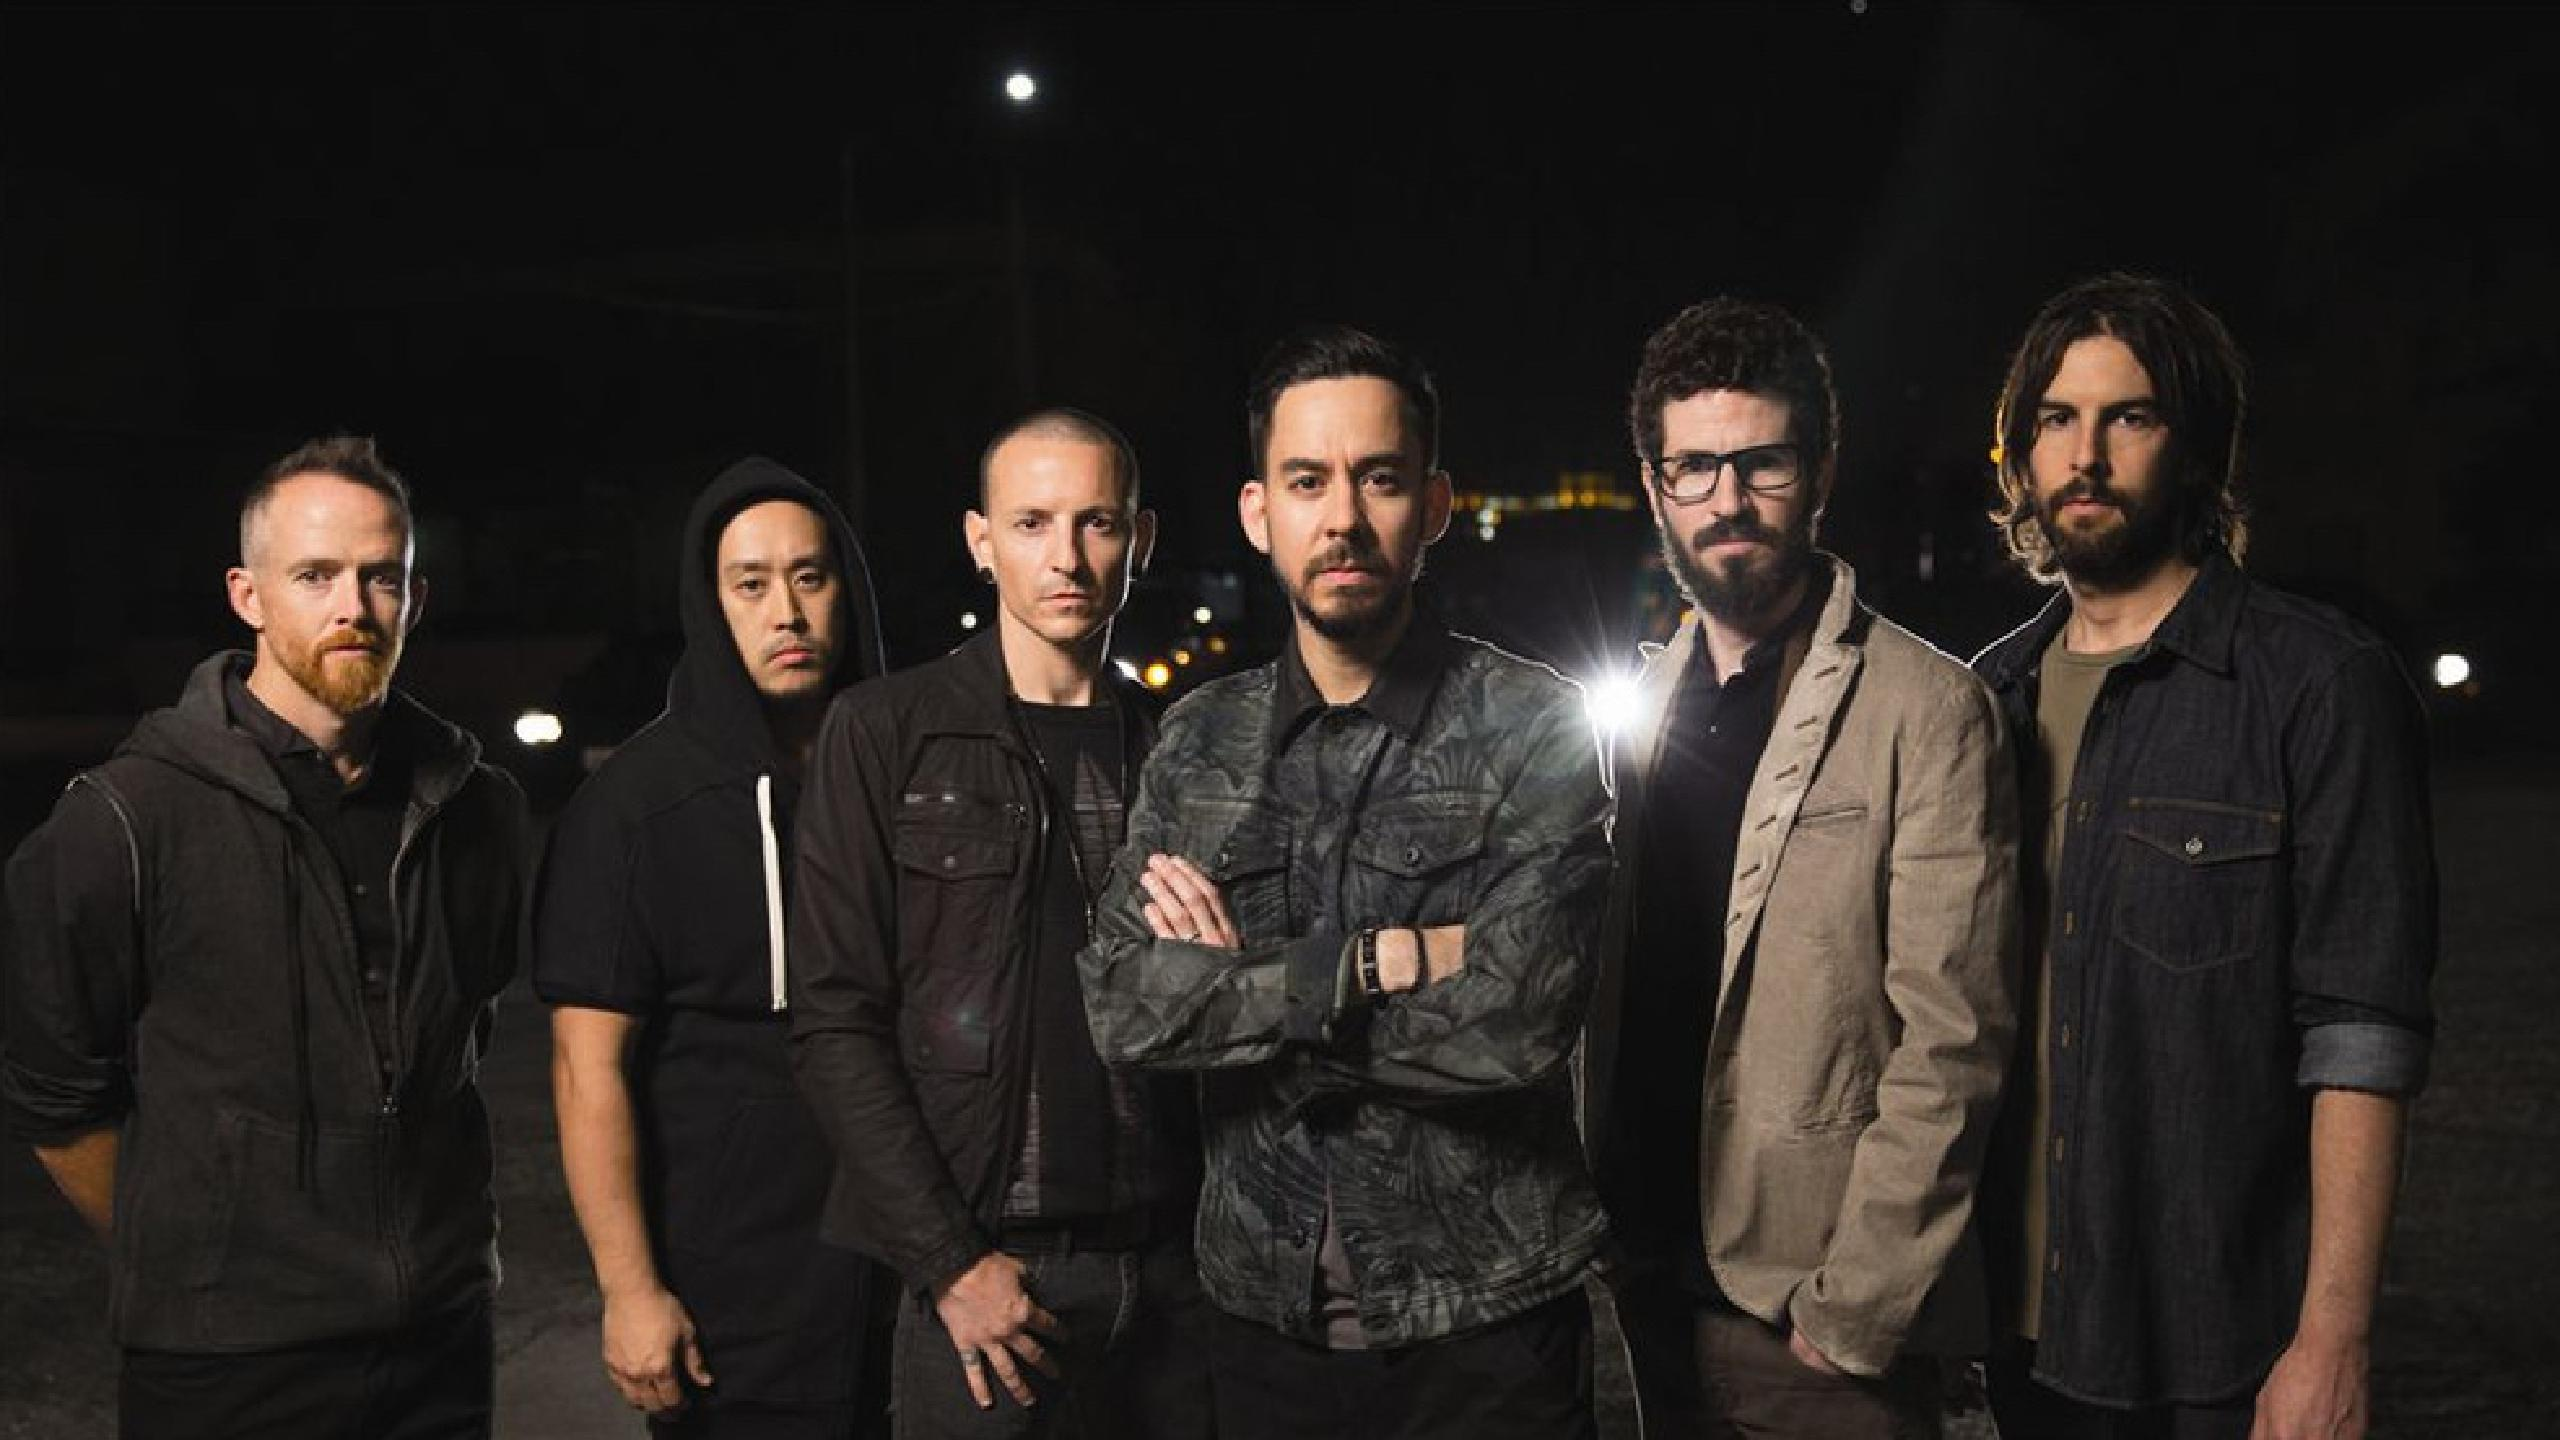 Linkin Park Tour 2019 Linkin Park tour dates 2019 2020. Linkin Park tickets and concerts